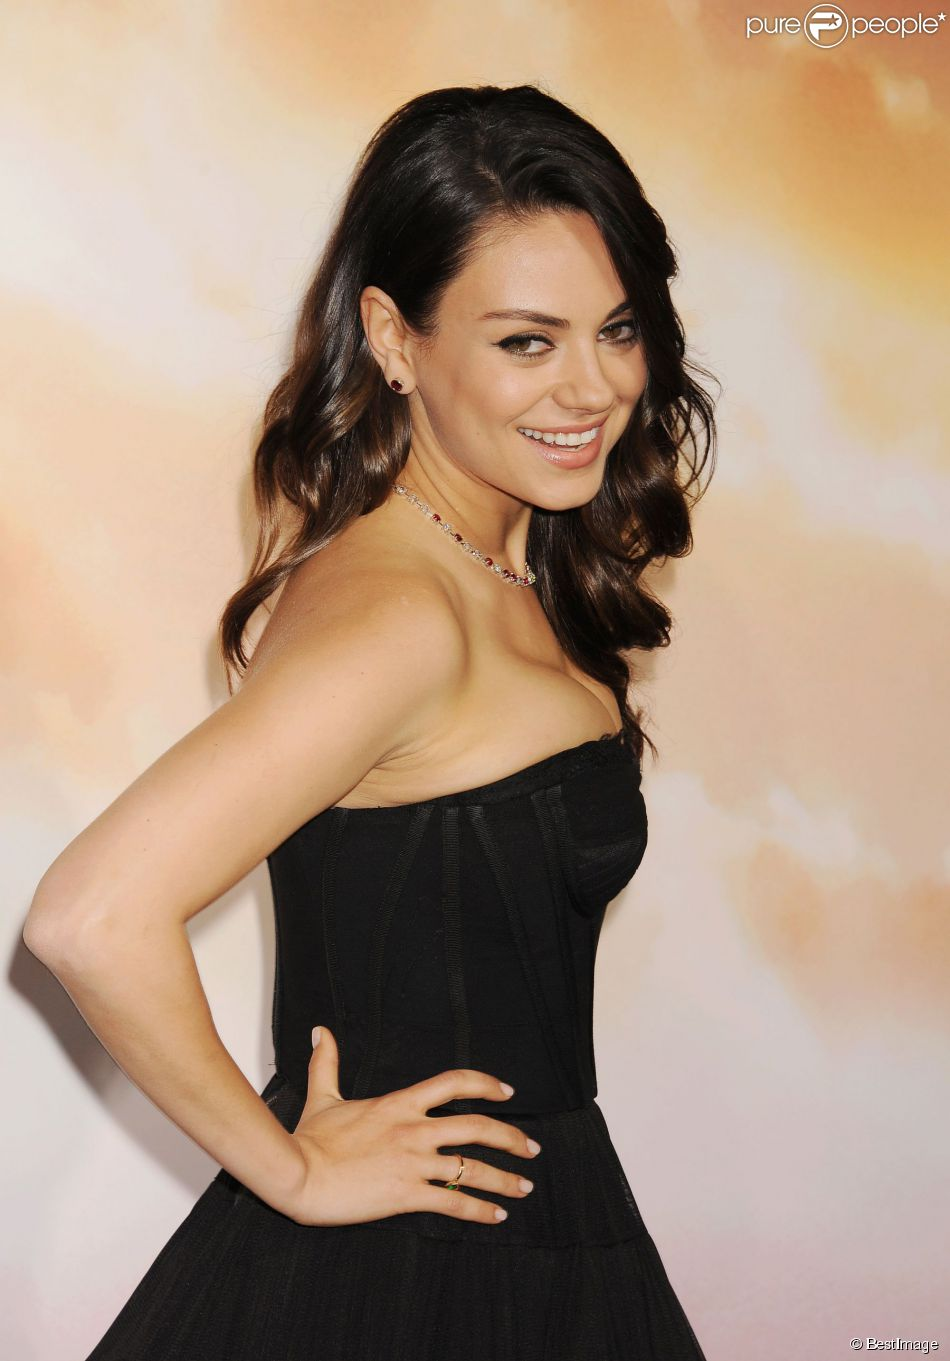 mila kunis premi re du film jupiter le destin de l 39 univers los angeles le 2 f vrier 2015. Black Bedroom Furniture Sets. Home Design Ideas